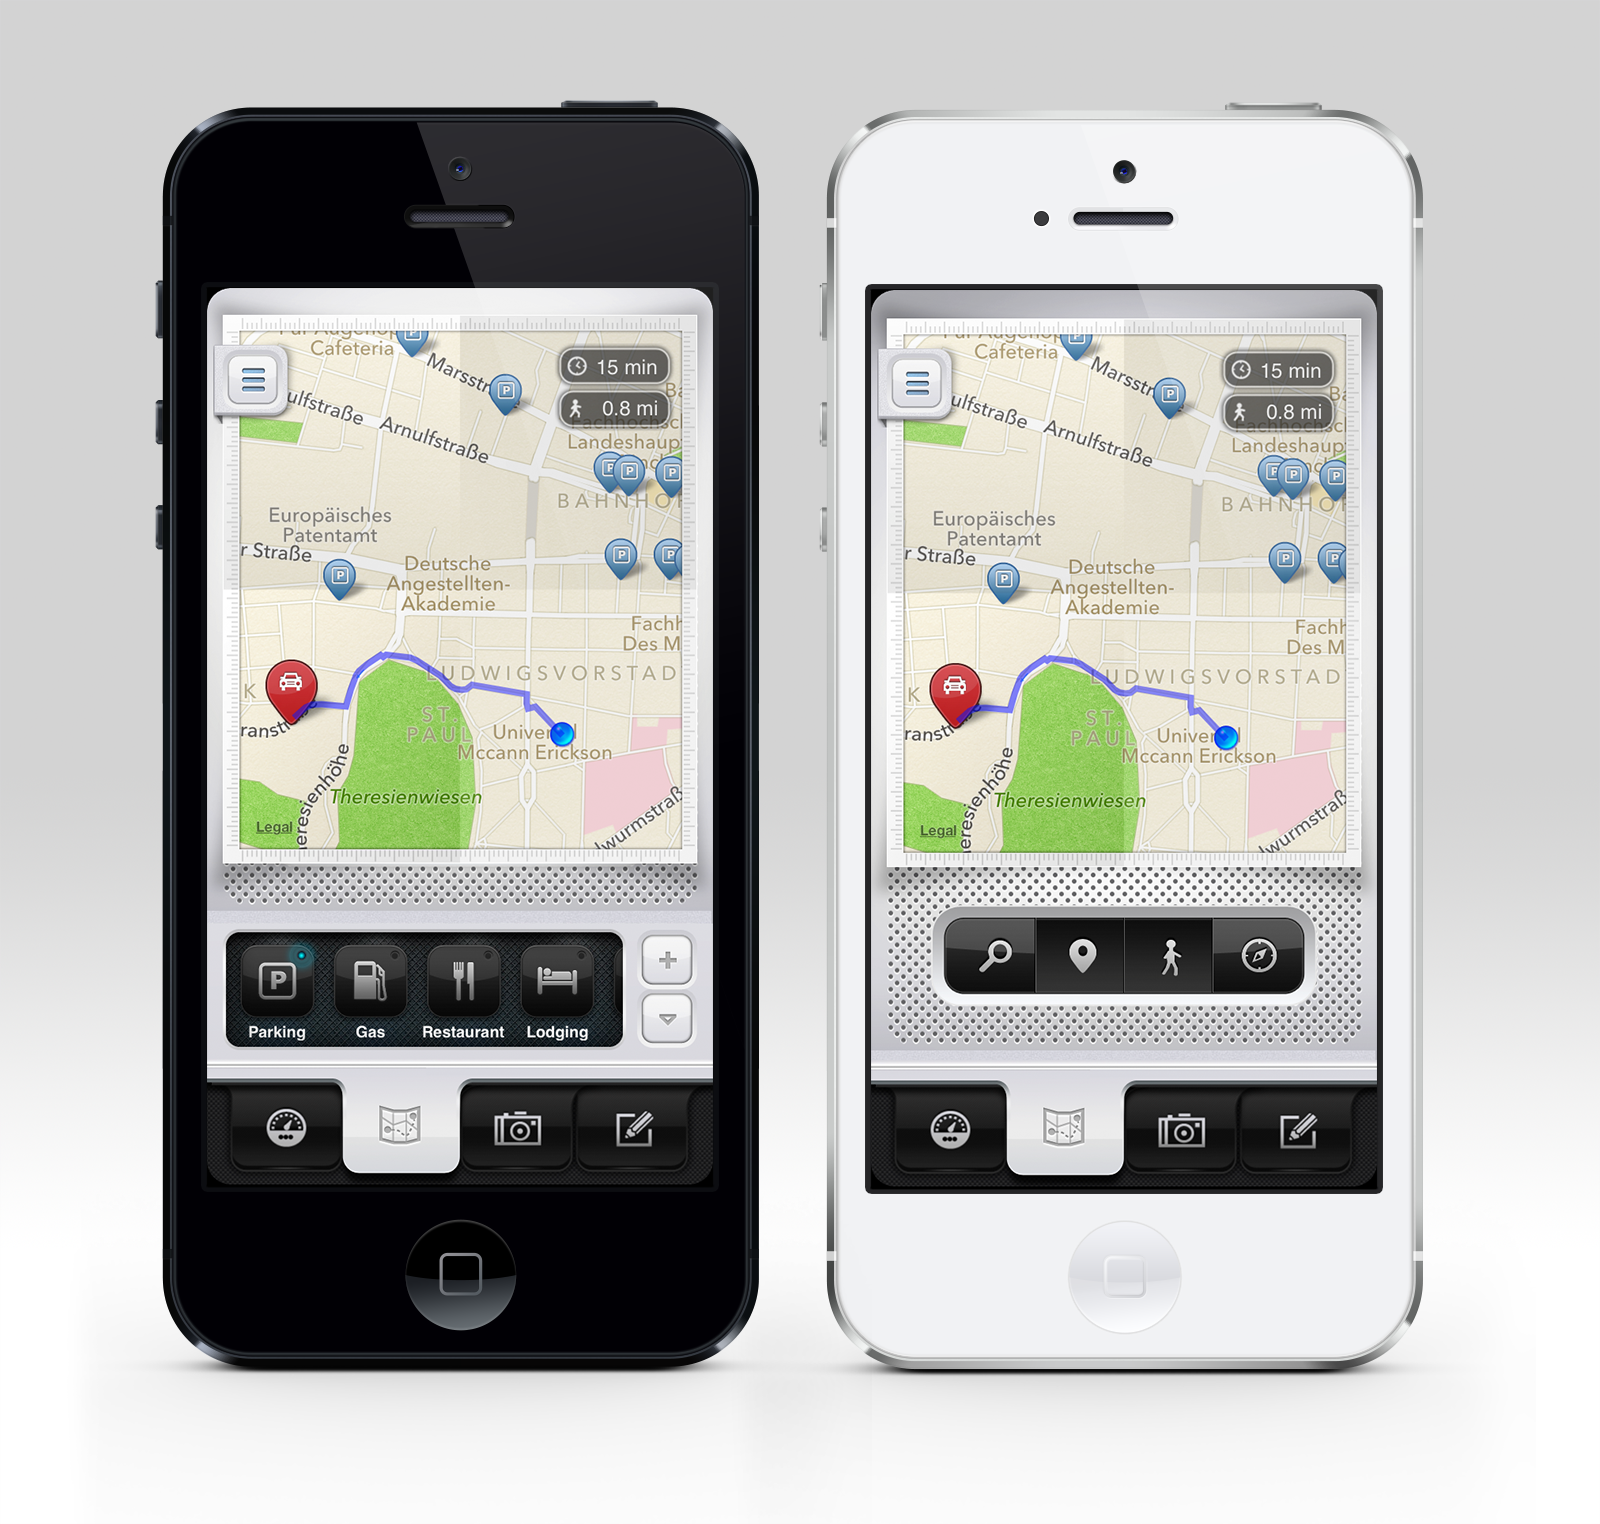 Parkbud for iPhone - Map Screen iPhone 5 App Design & UI, Parking ...